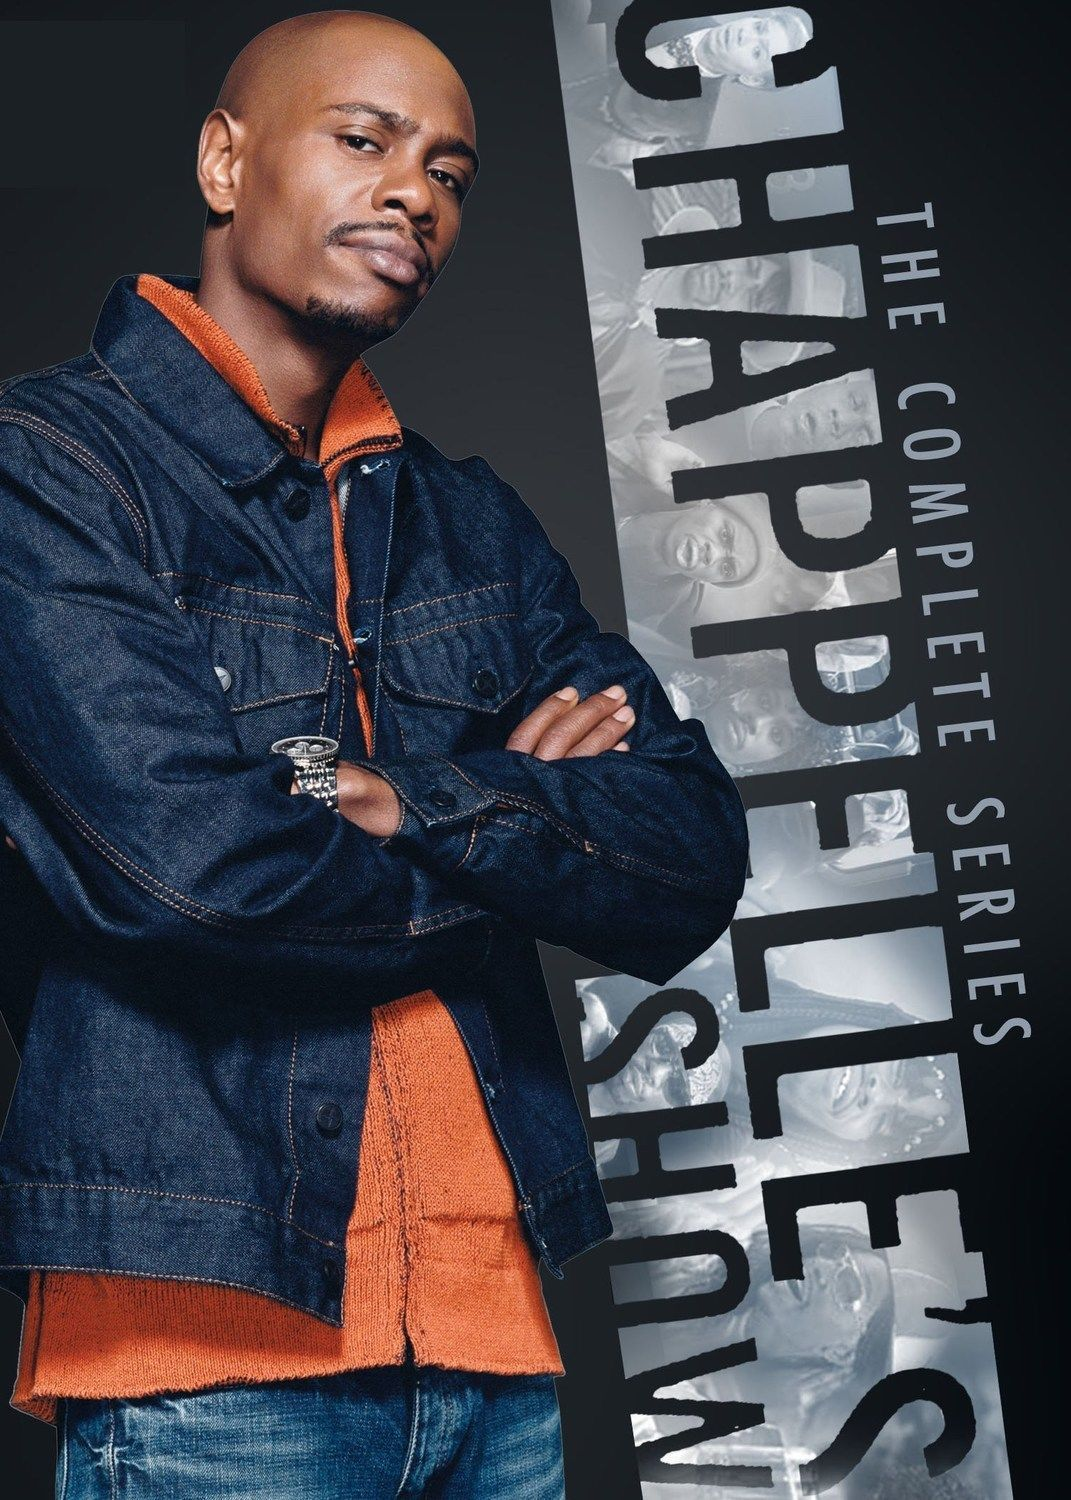 Dave Chappelle's Show The Complete Series [DVD Set] Comedy Central TV Show